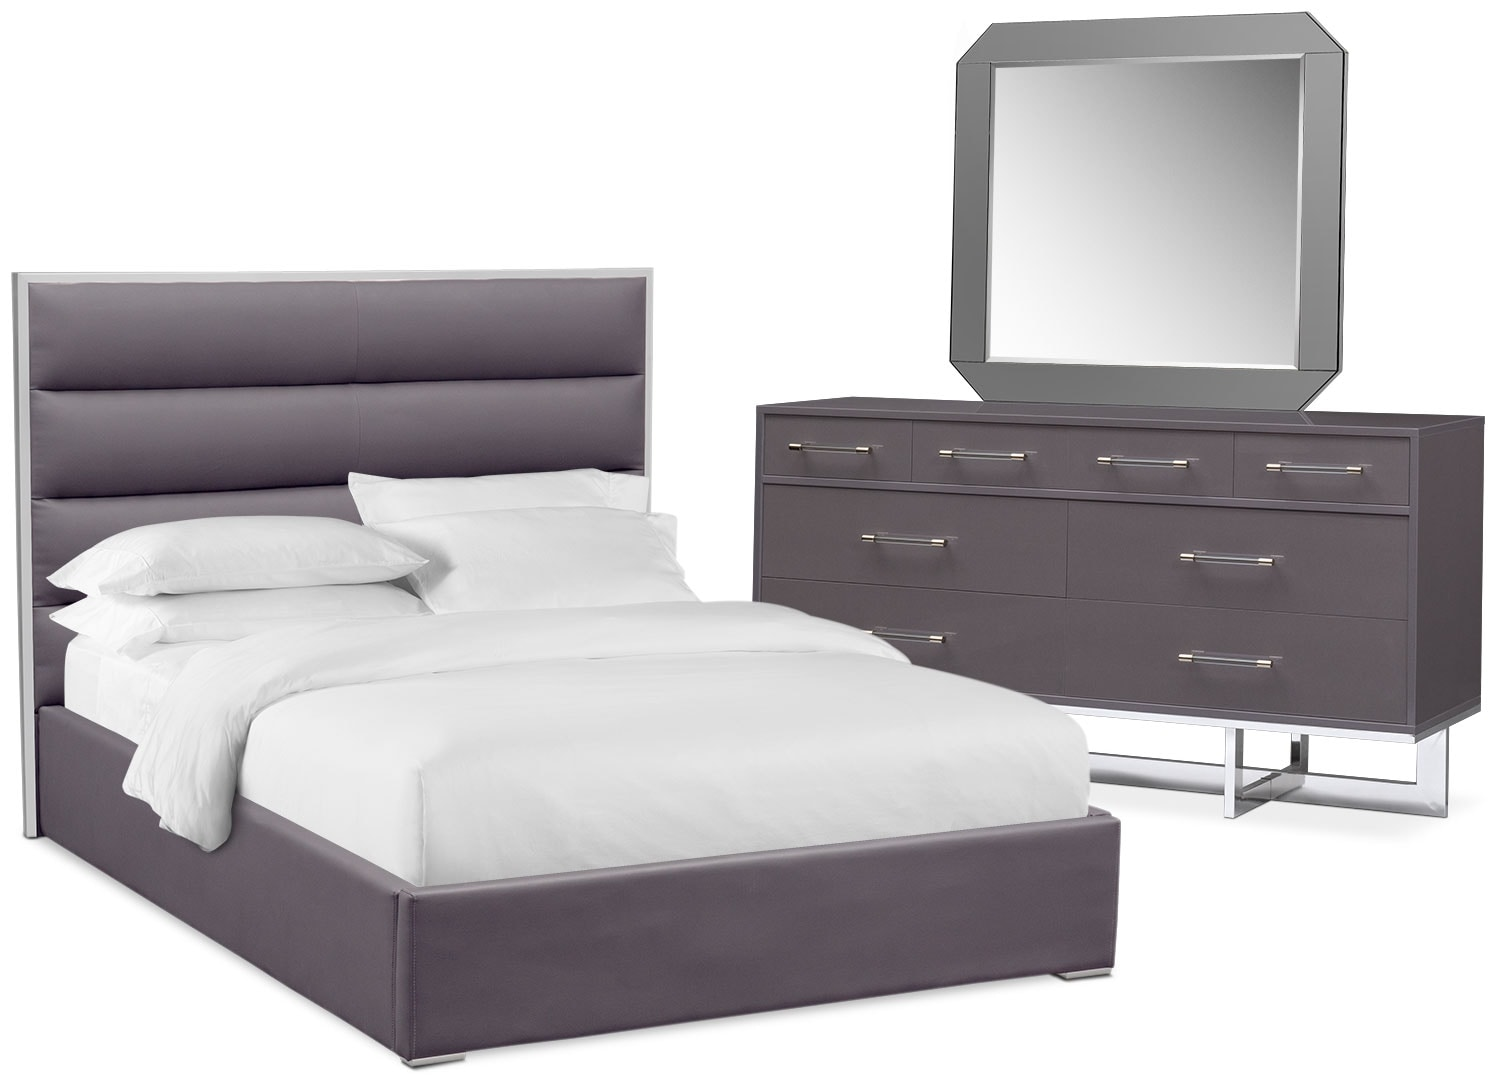 Concerto 5-Piece Bedroom Set with Dresser and Mirror | American ...